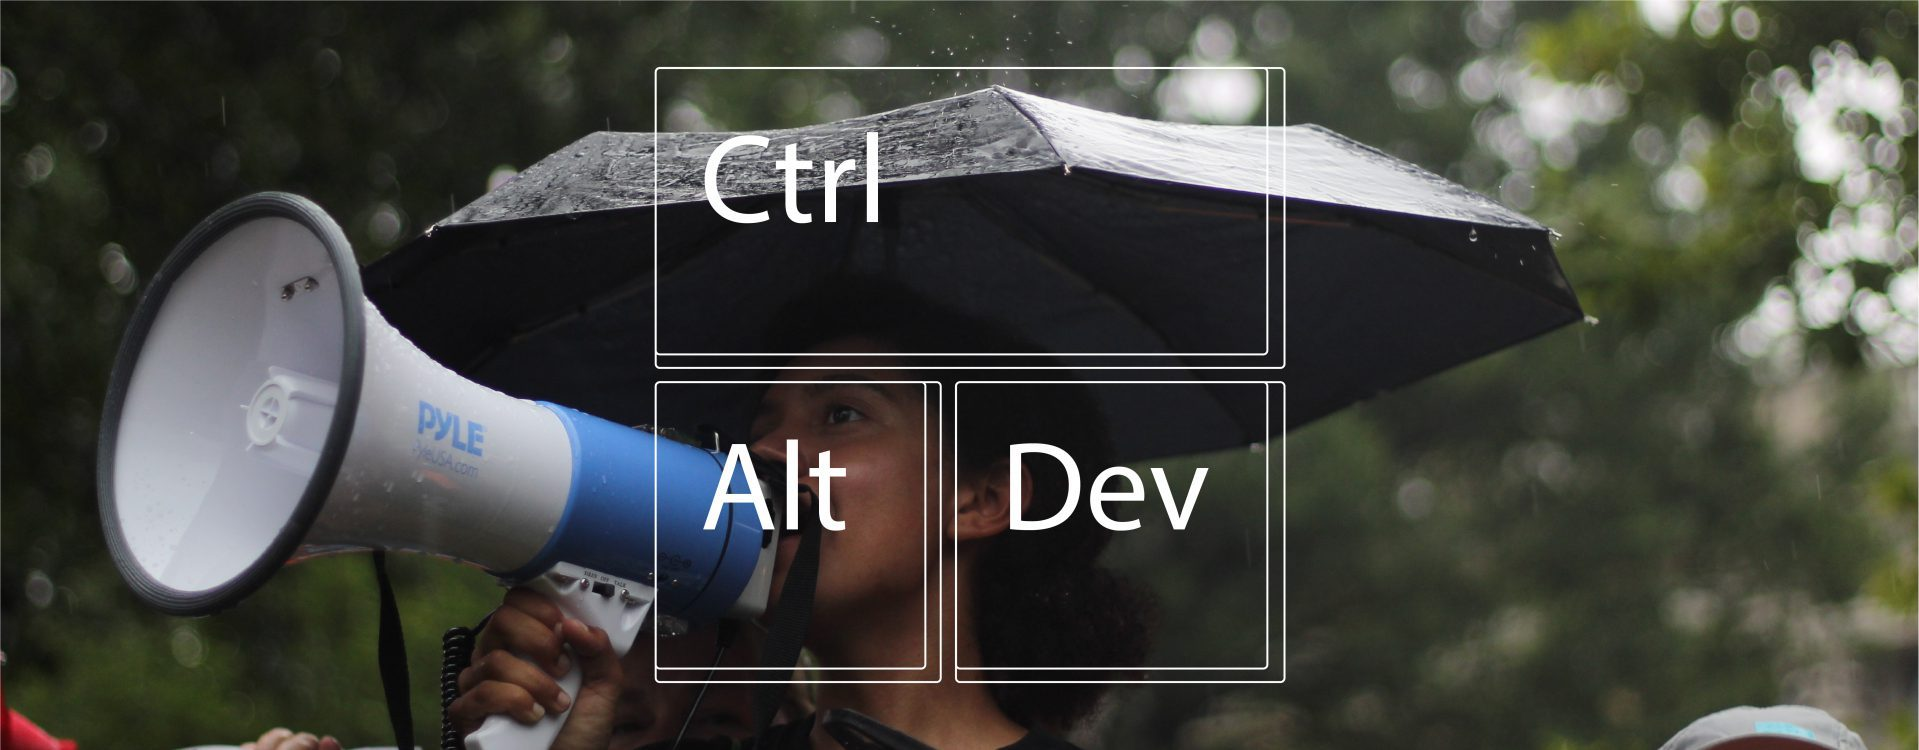 Ctrl+Alt+Dev Blog